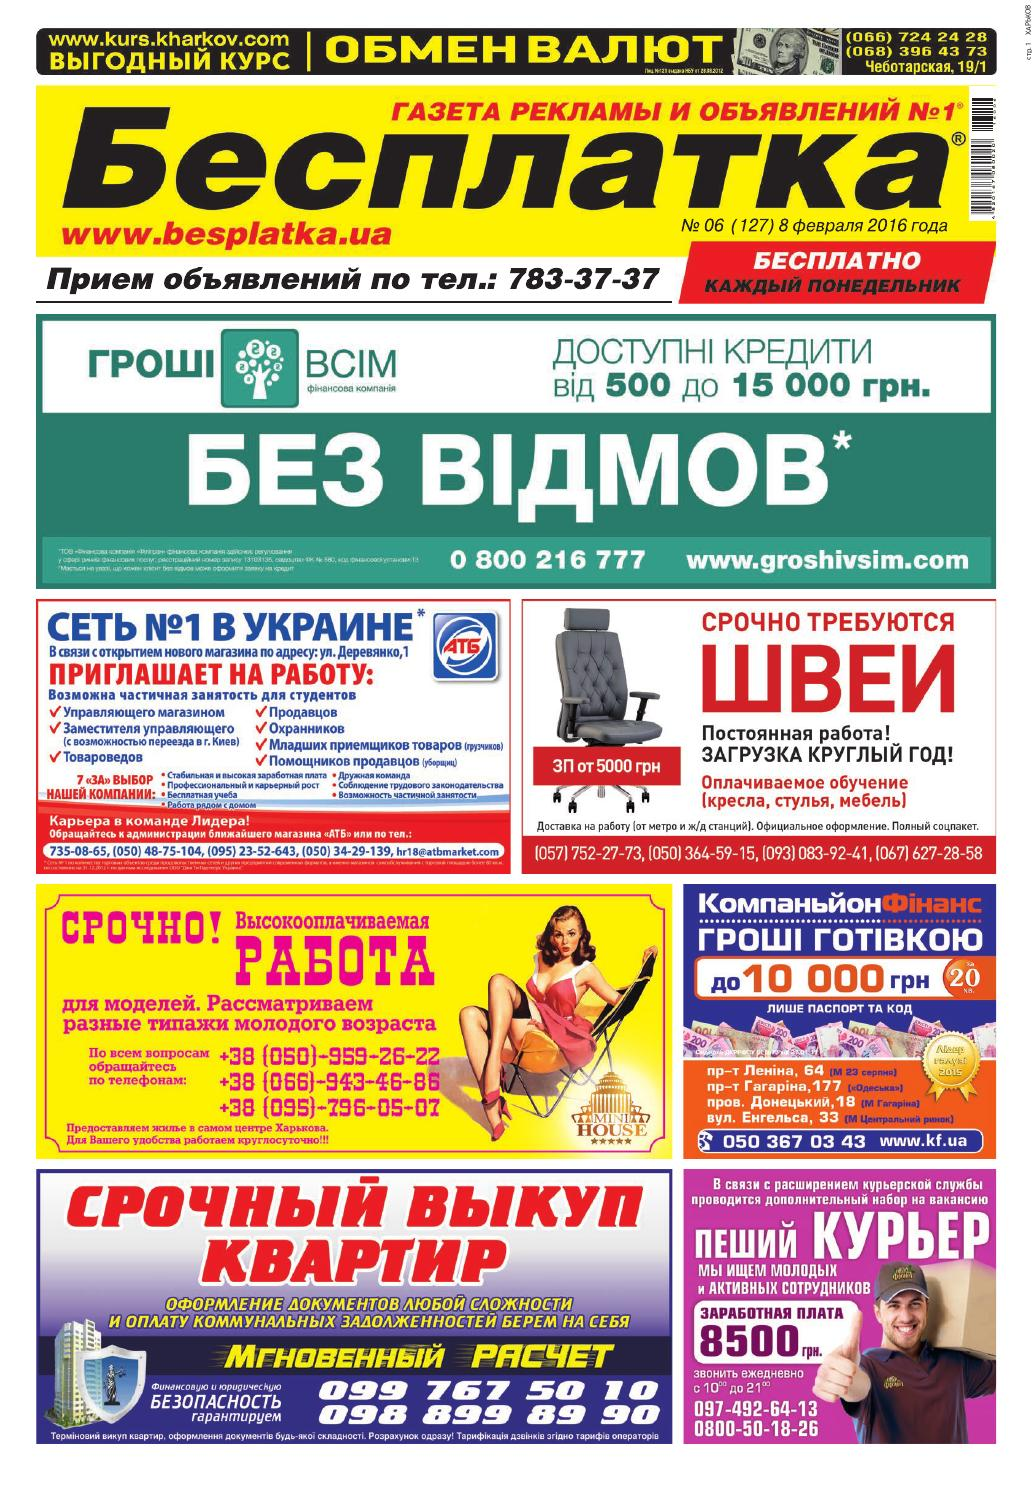 Besplatka  06 Харьков by besplatka ukraine - issuu bfa42a30fa3